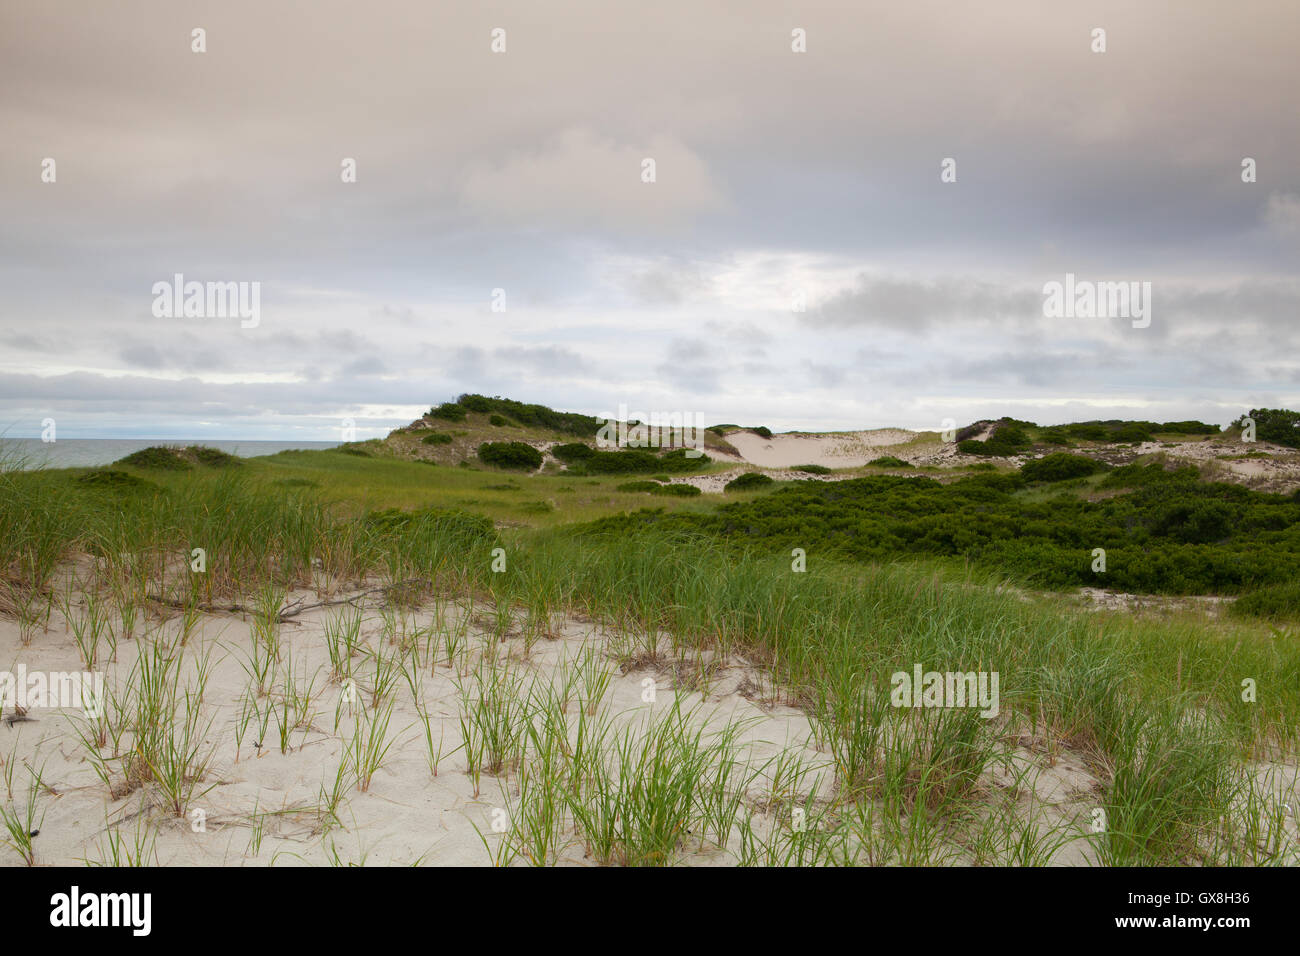 Sunset in the sand dunes beach on the Cape Cod National Seashore on the Atlantic Ocean - Stock Image